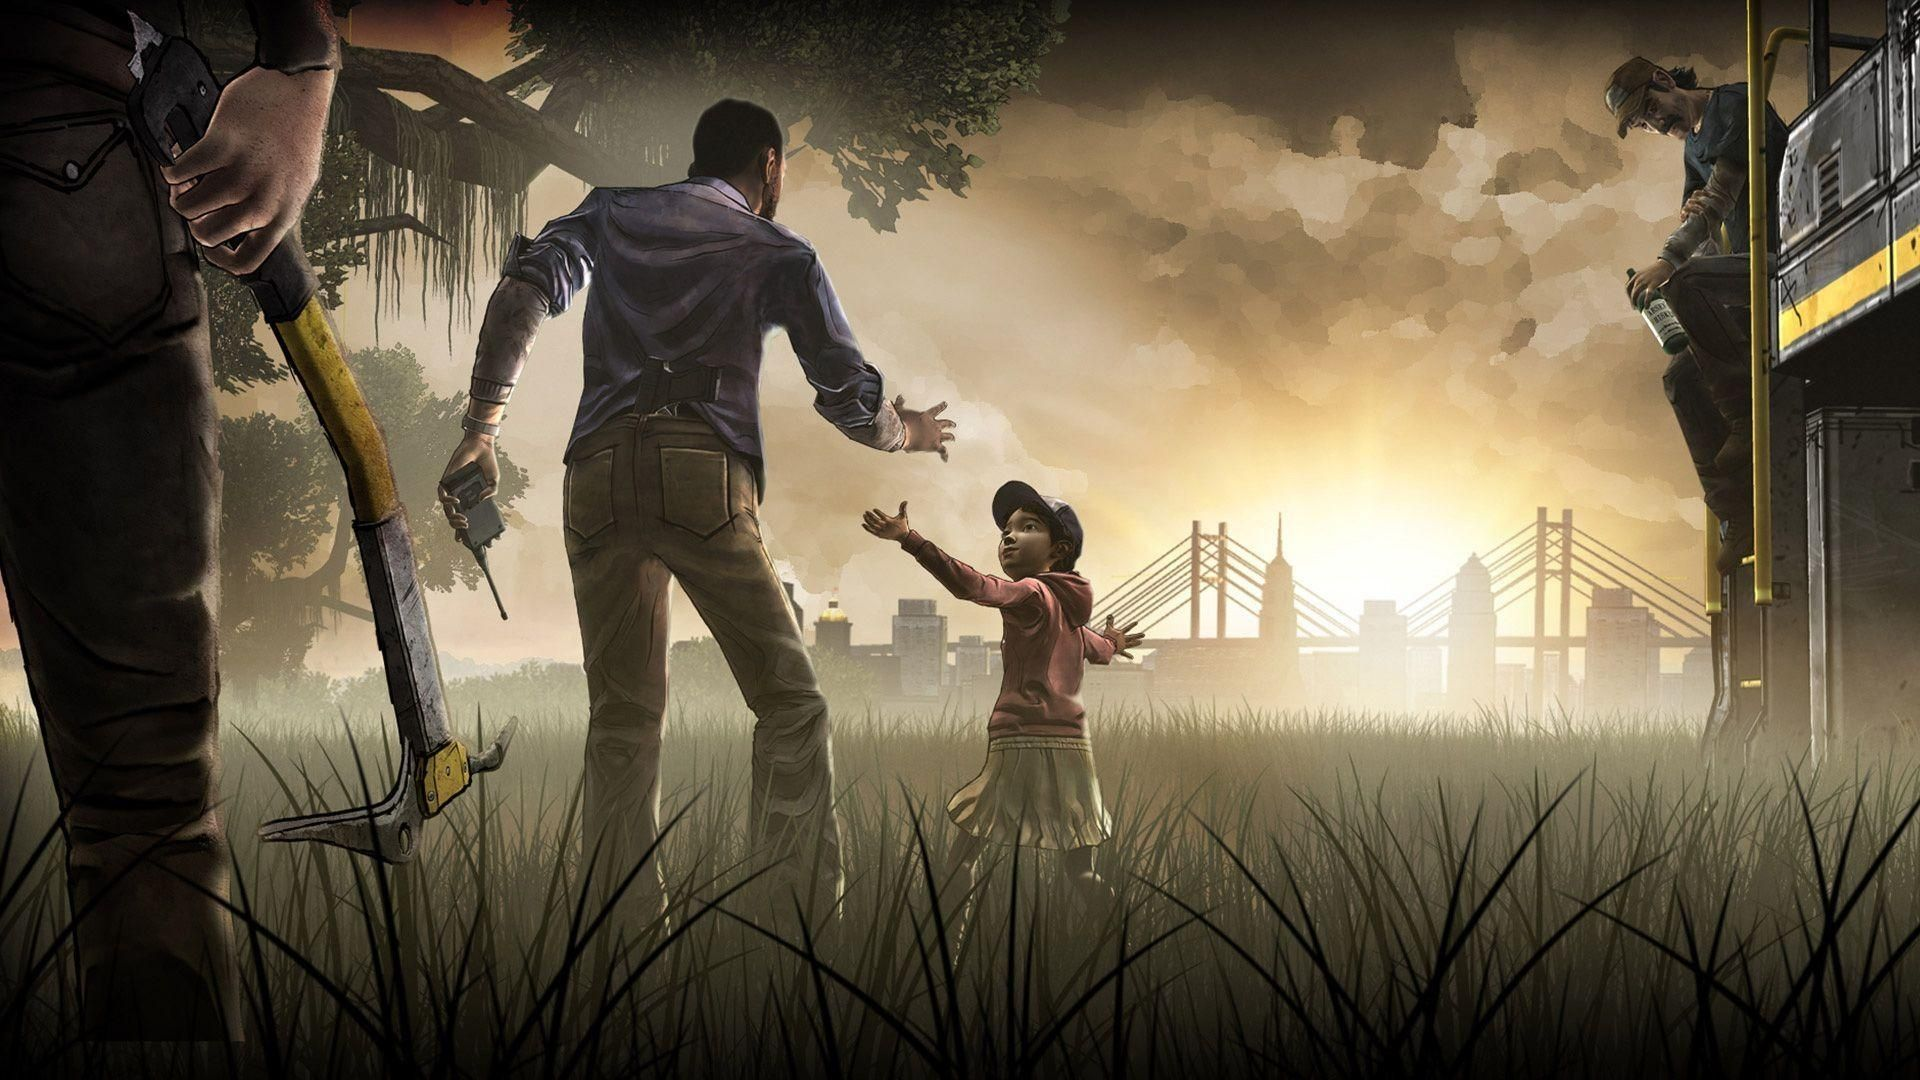 10 Latest Walking Dead Game Wallpaper Full Hd 1080p For Pc Desktop